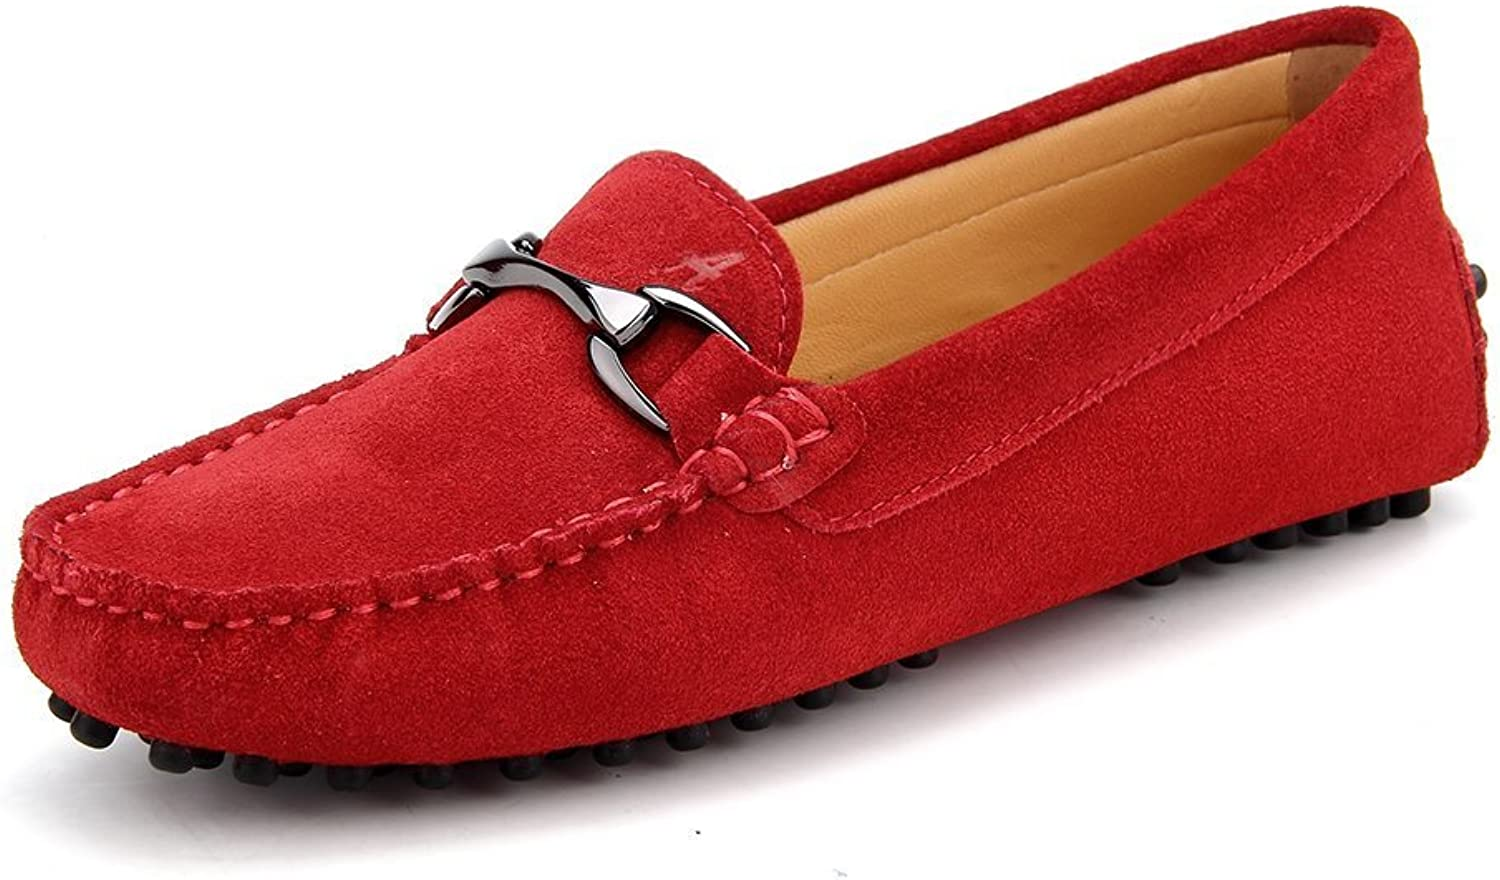 Oppicong Sneakers Women Suede Moccasin Slip-on Loafer Casual shoes 7062 in Winter Comfortable